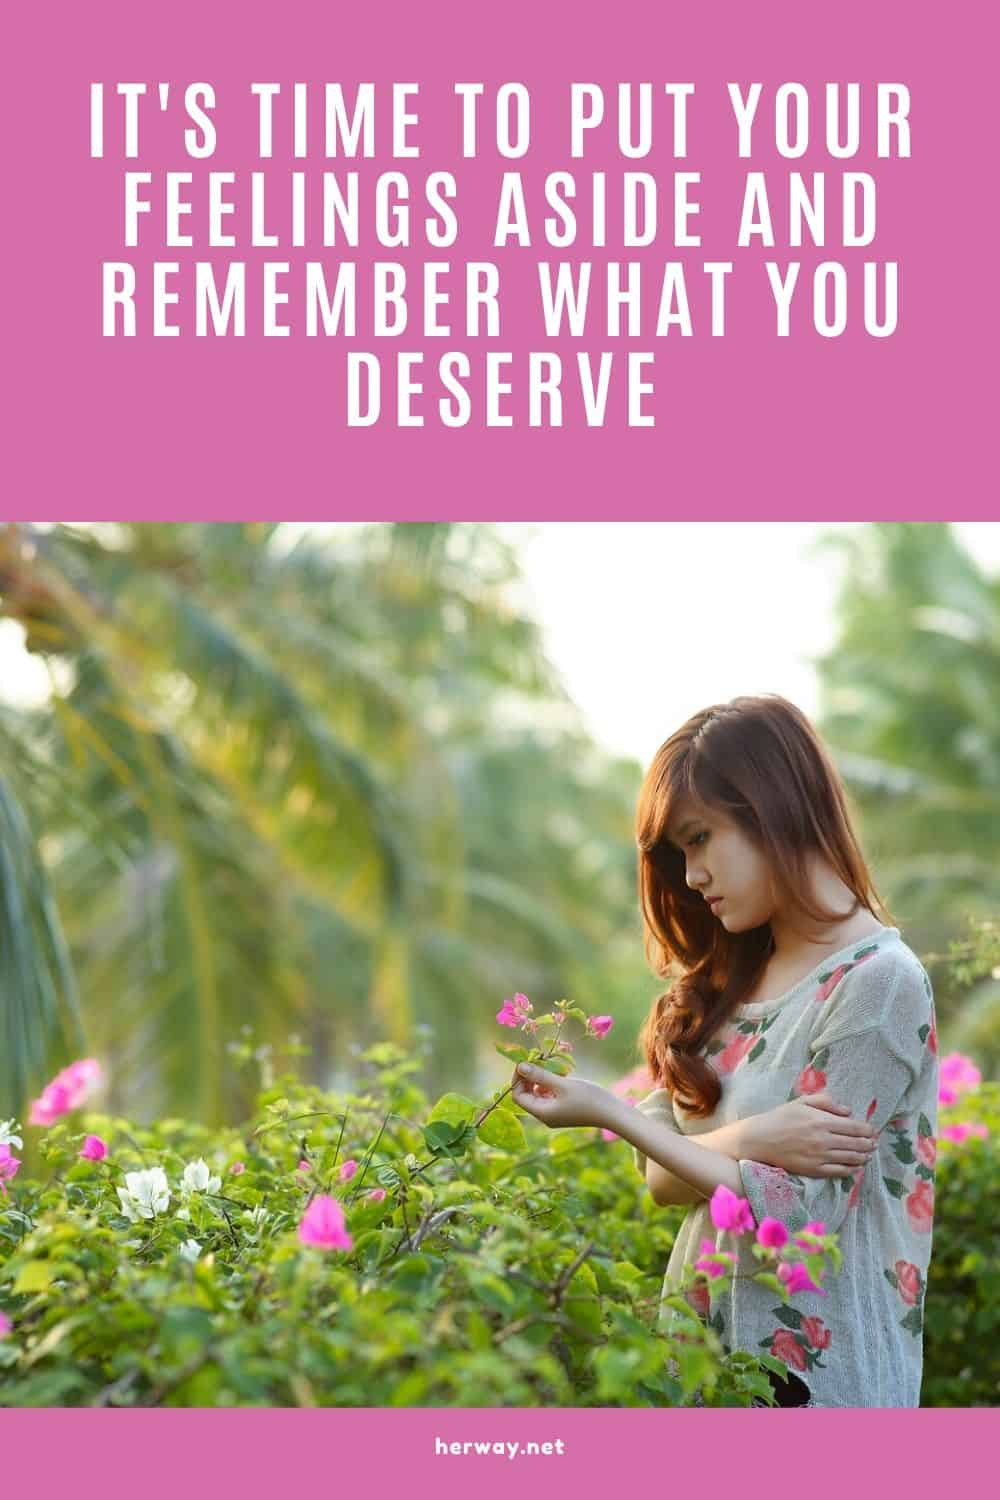 It's Time To Put Your Feelings Aside And Remember What You Deserve